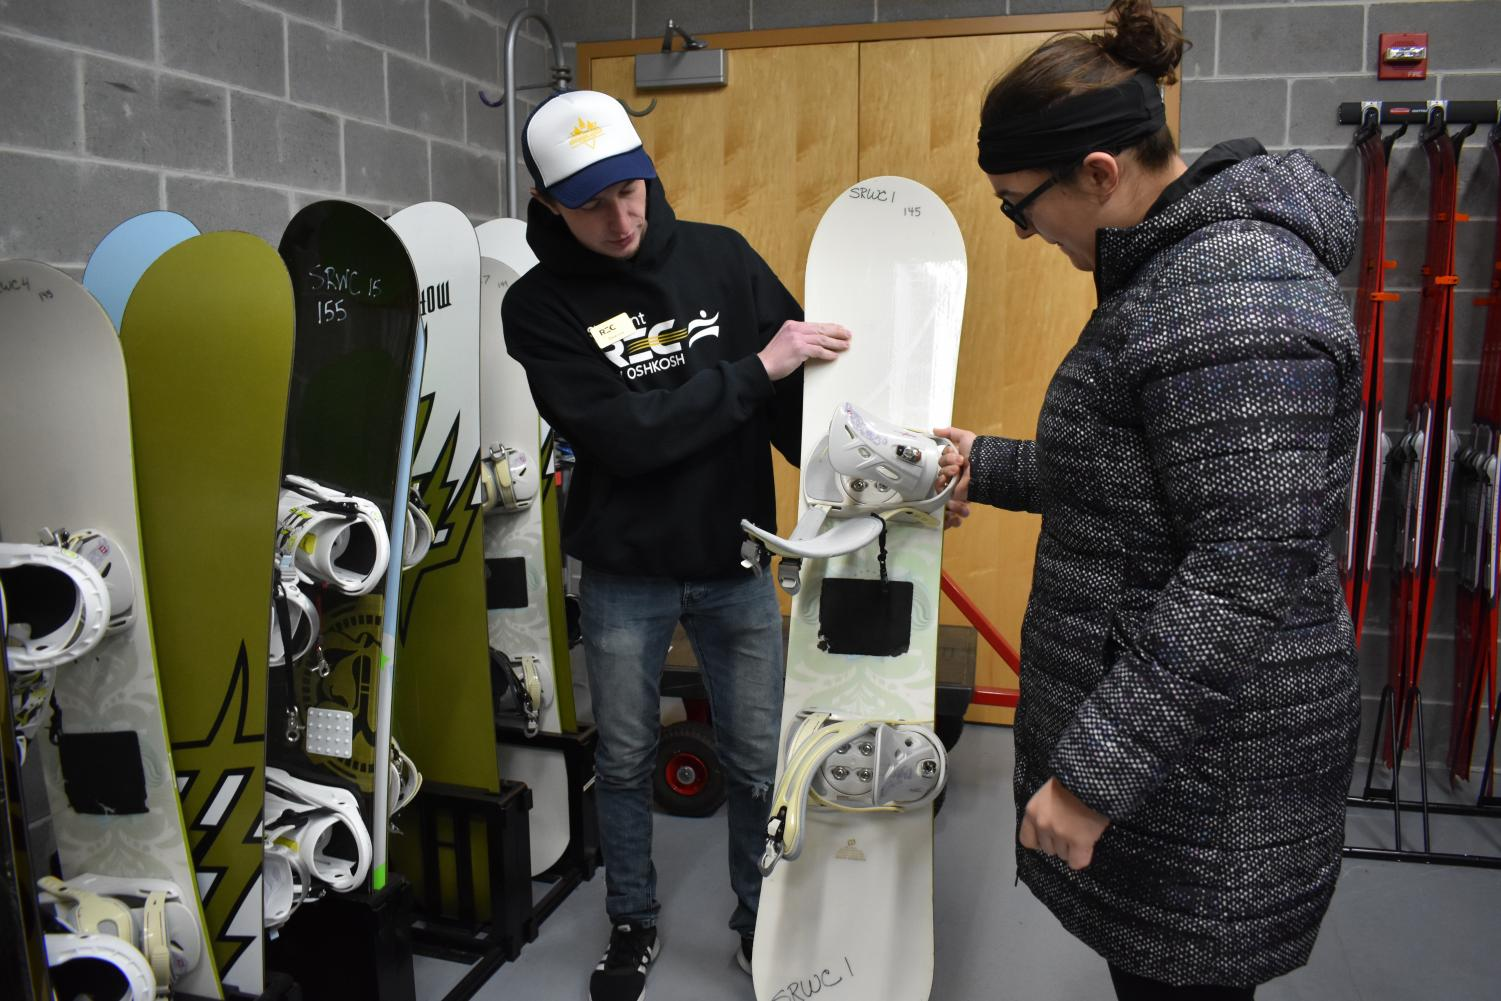 Students check out winter sports equipment including snow shoes and snowboards from the Student Recreation and Wellness Center.